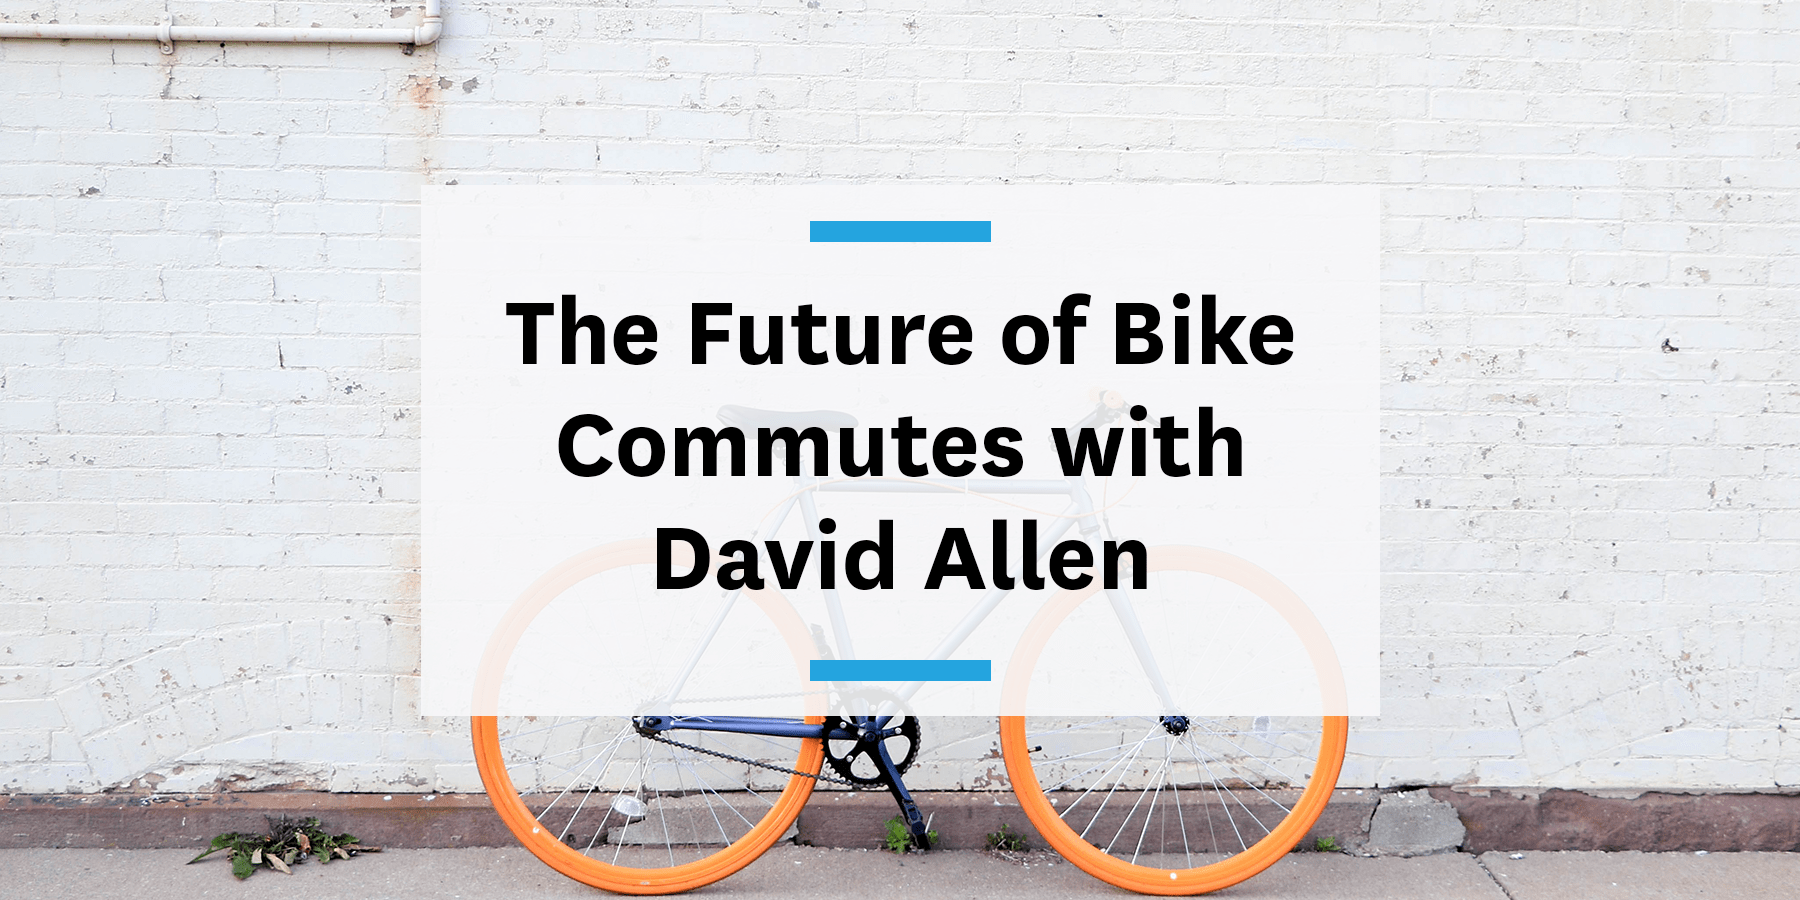 The future of bike commutes with David Allen